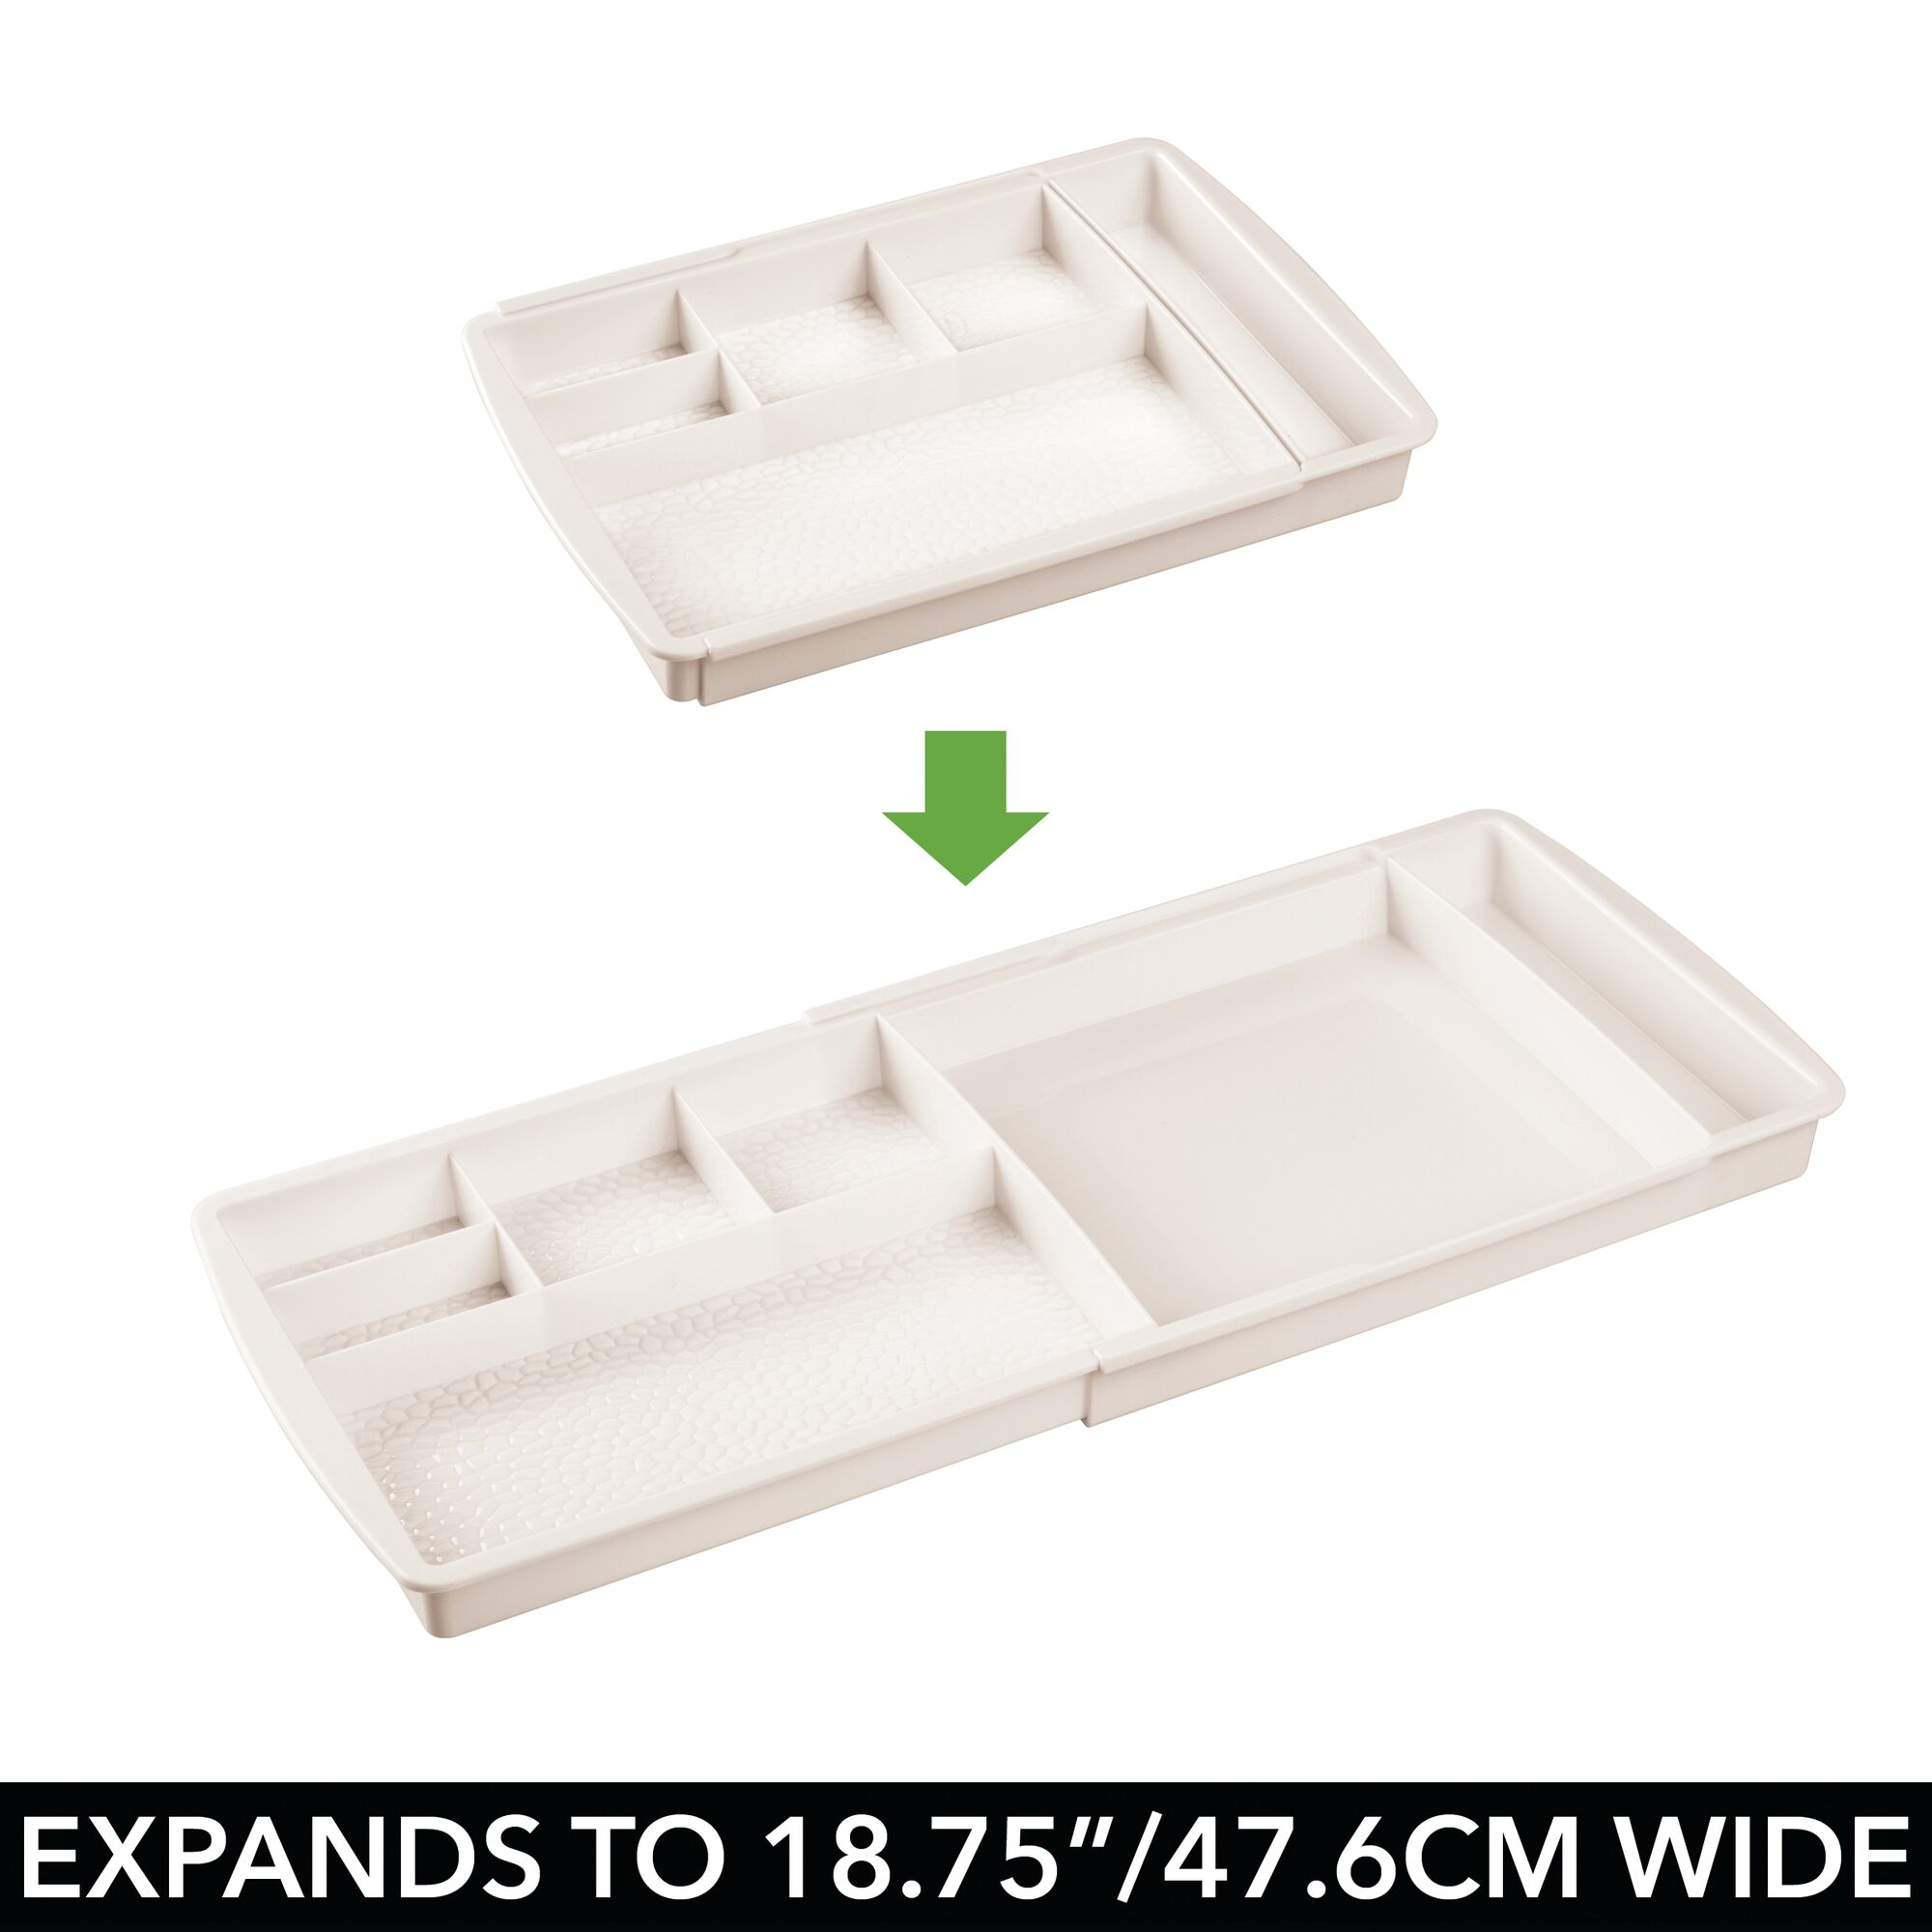 mDesign-Expandable-Makeup-Organizer-Tray-for-Bathroom-Drawers thumbnail 24